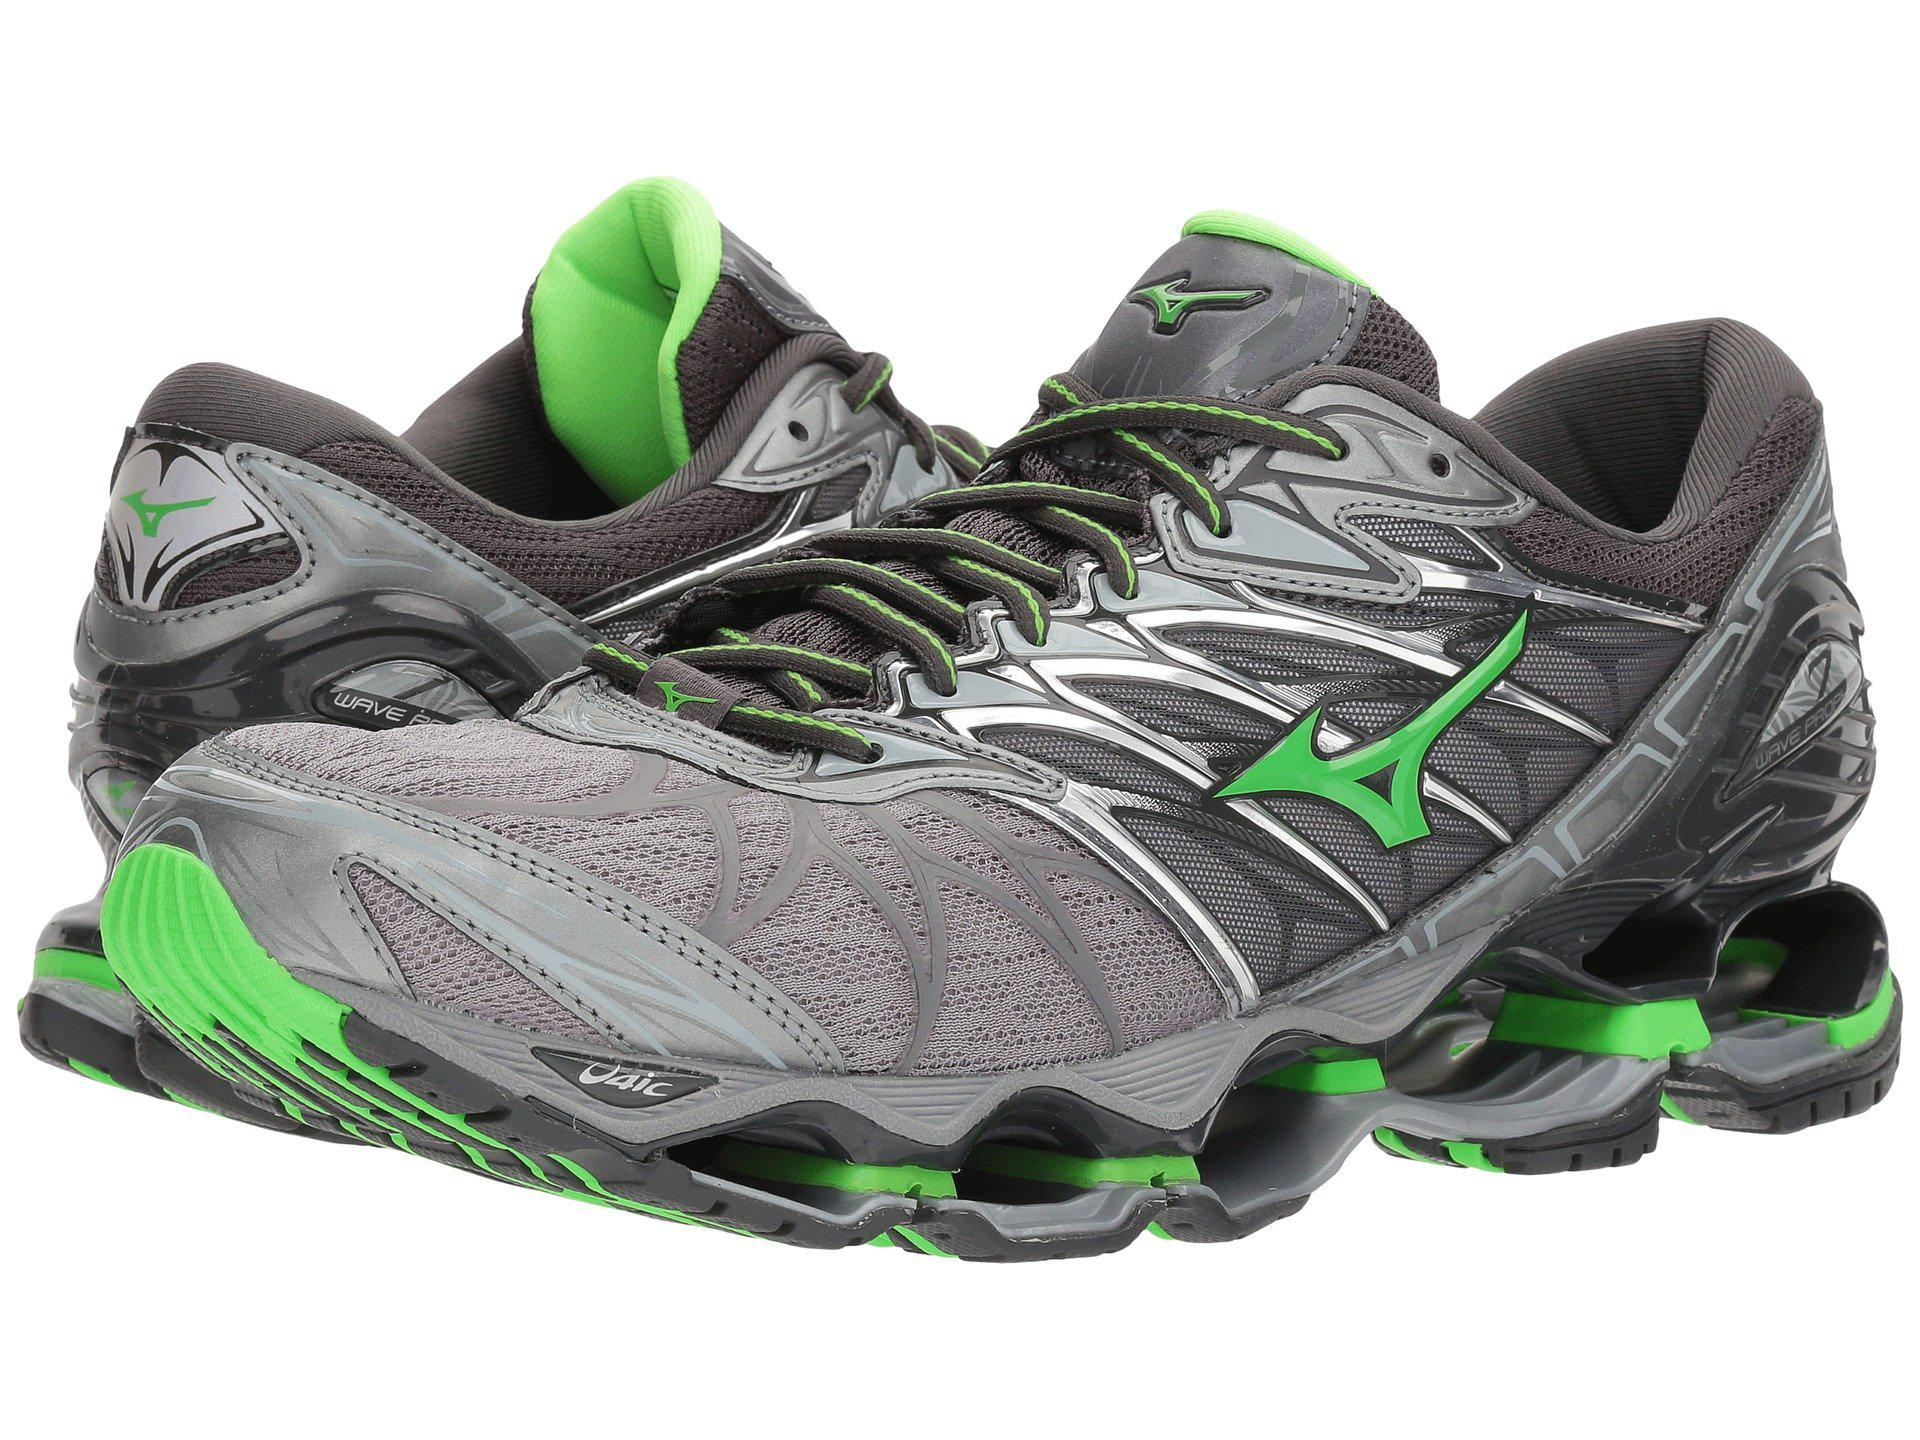 a441d1f0eb4b ... authentic mizuno. green wave prophecy 7 black silver mens running shoes  55811 b19ef